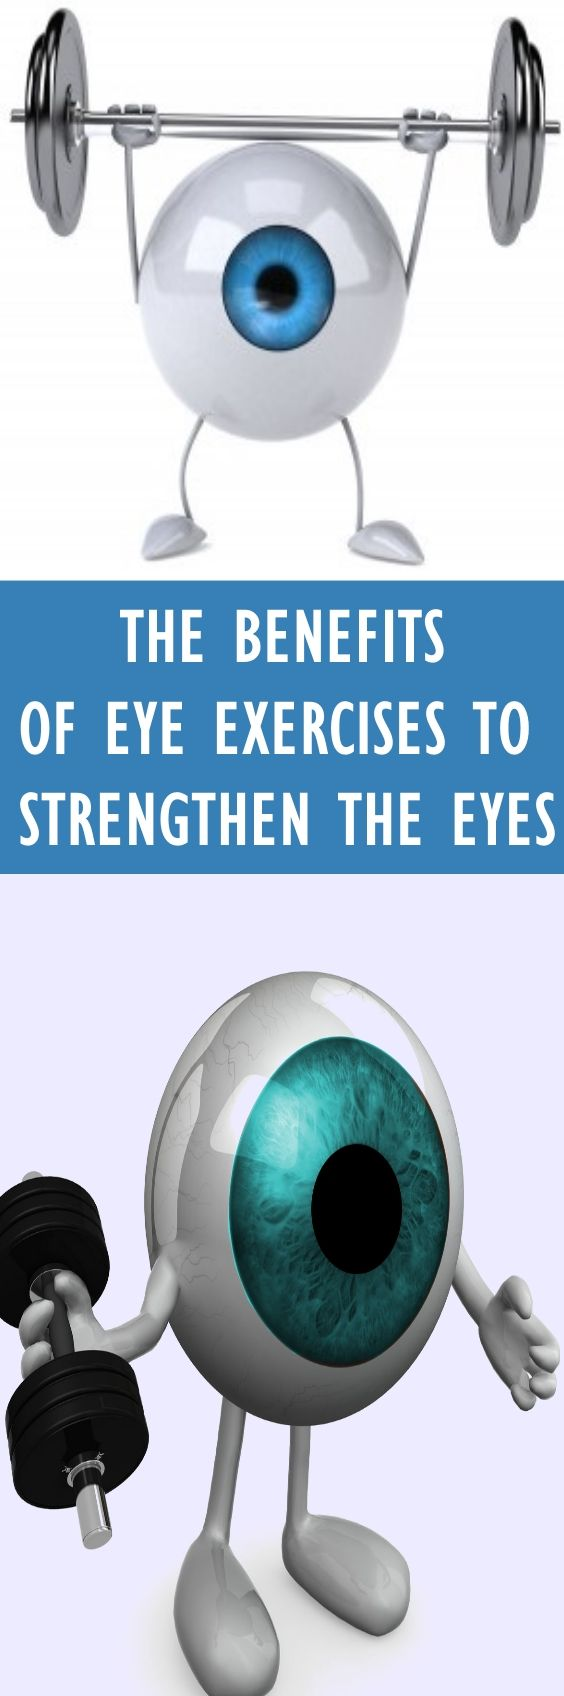 The Benefits of Eye Exercises to Strengthen the Eyes